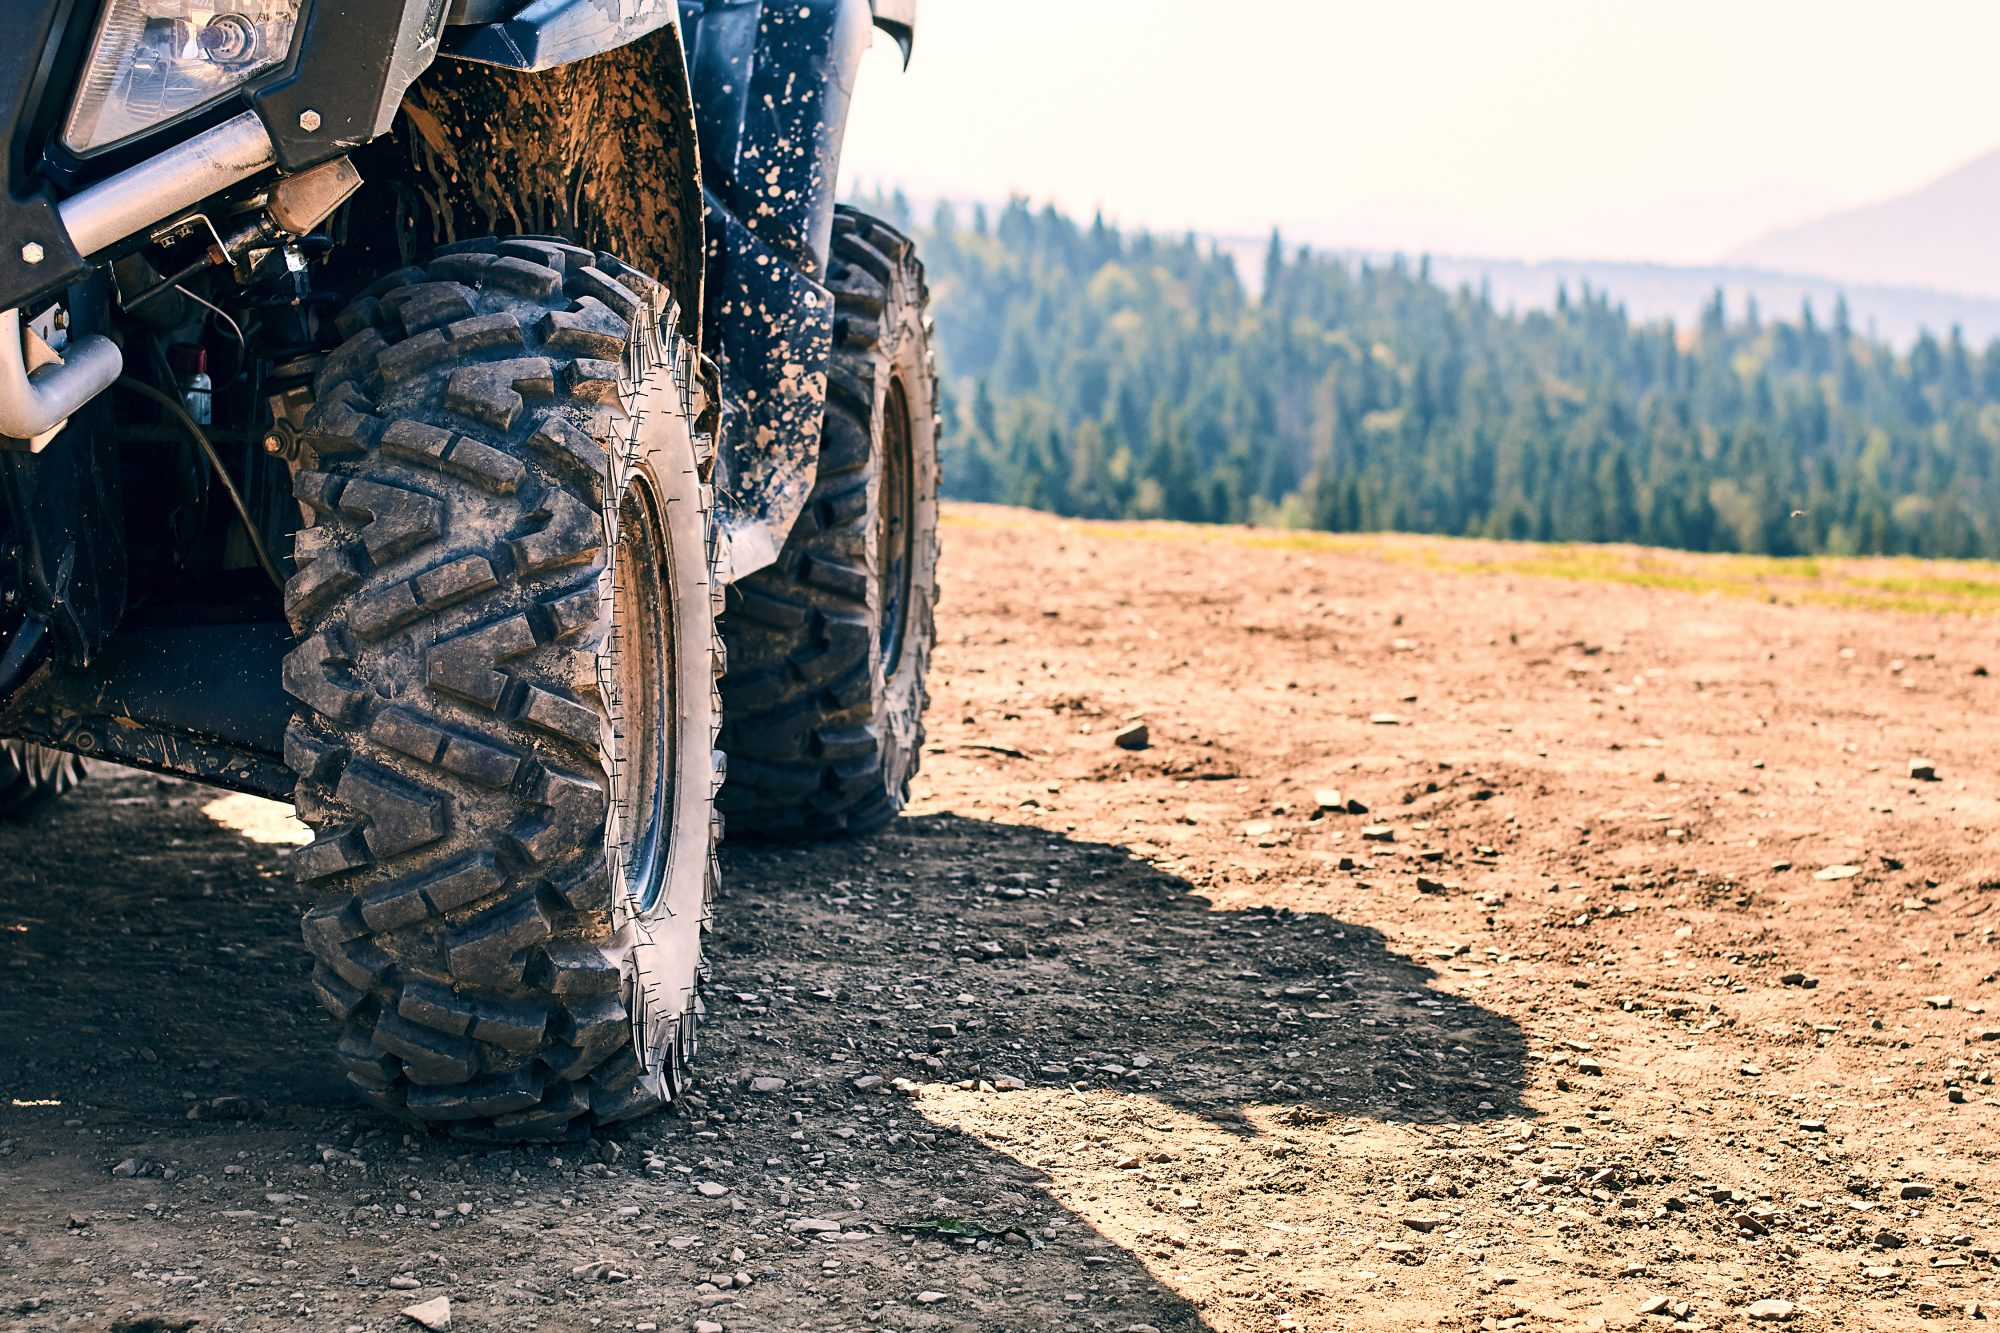 How Dangerous Are ATVs? The Risks and How to Stay Safe on the Popular Vehicles